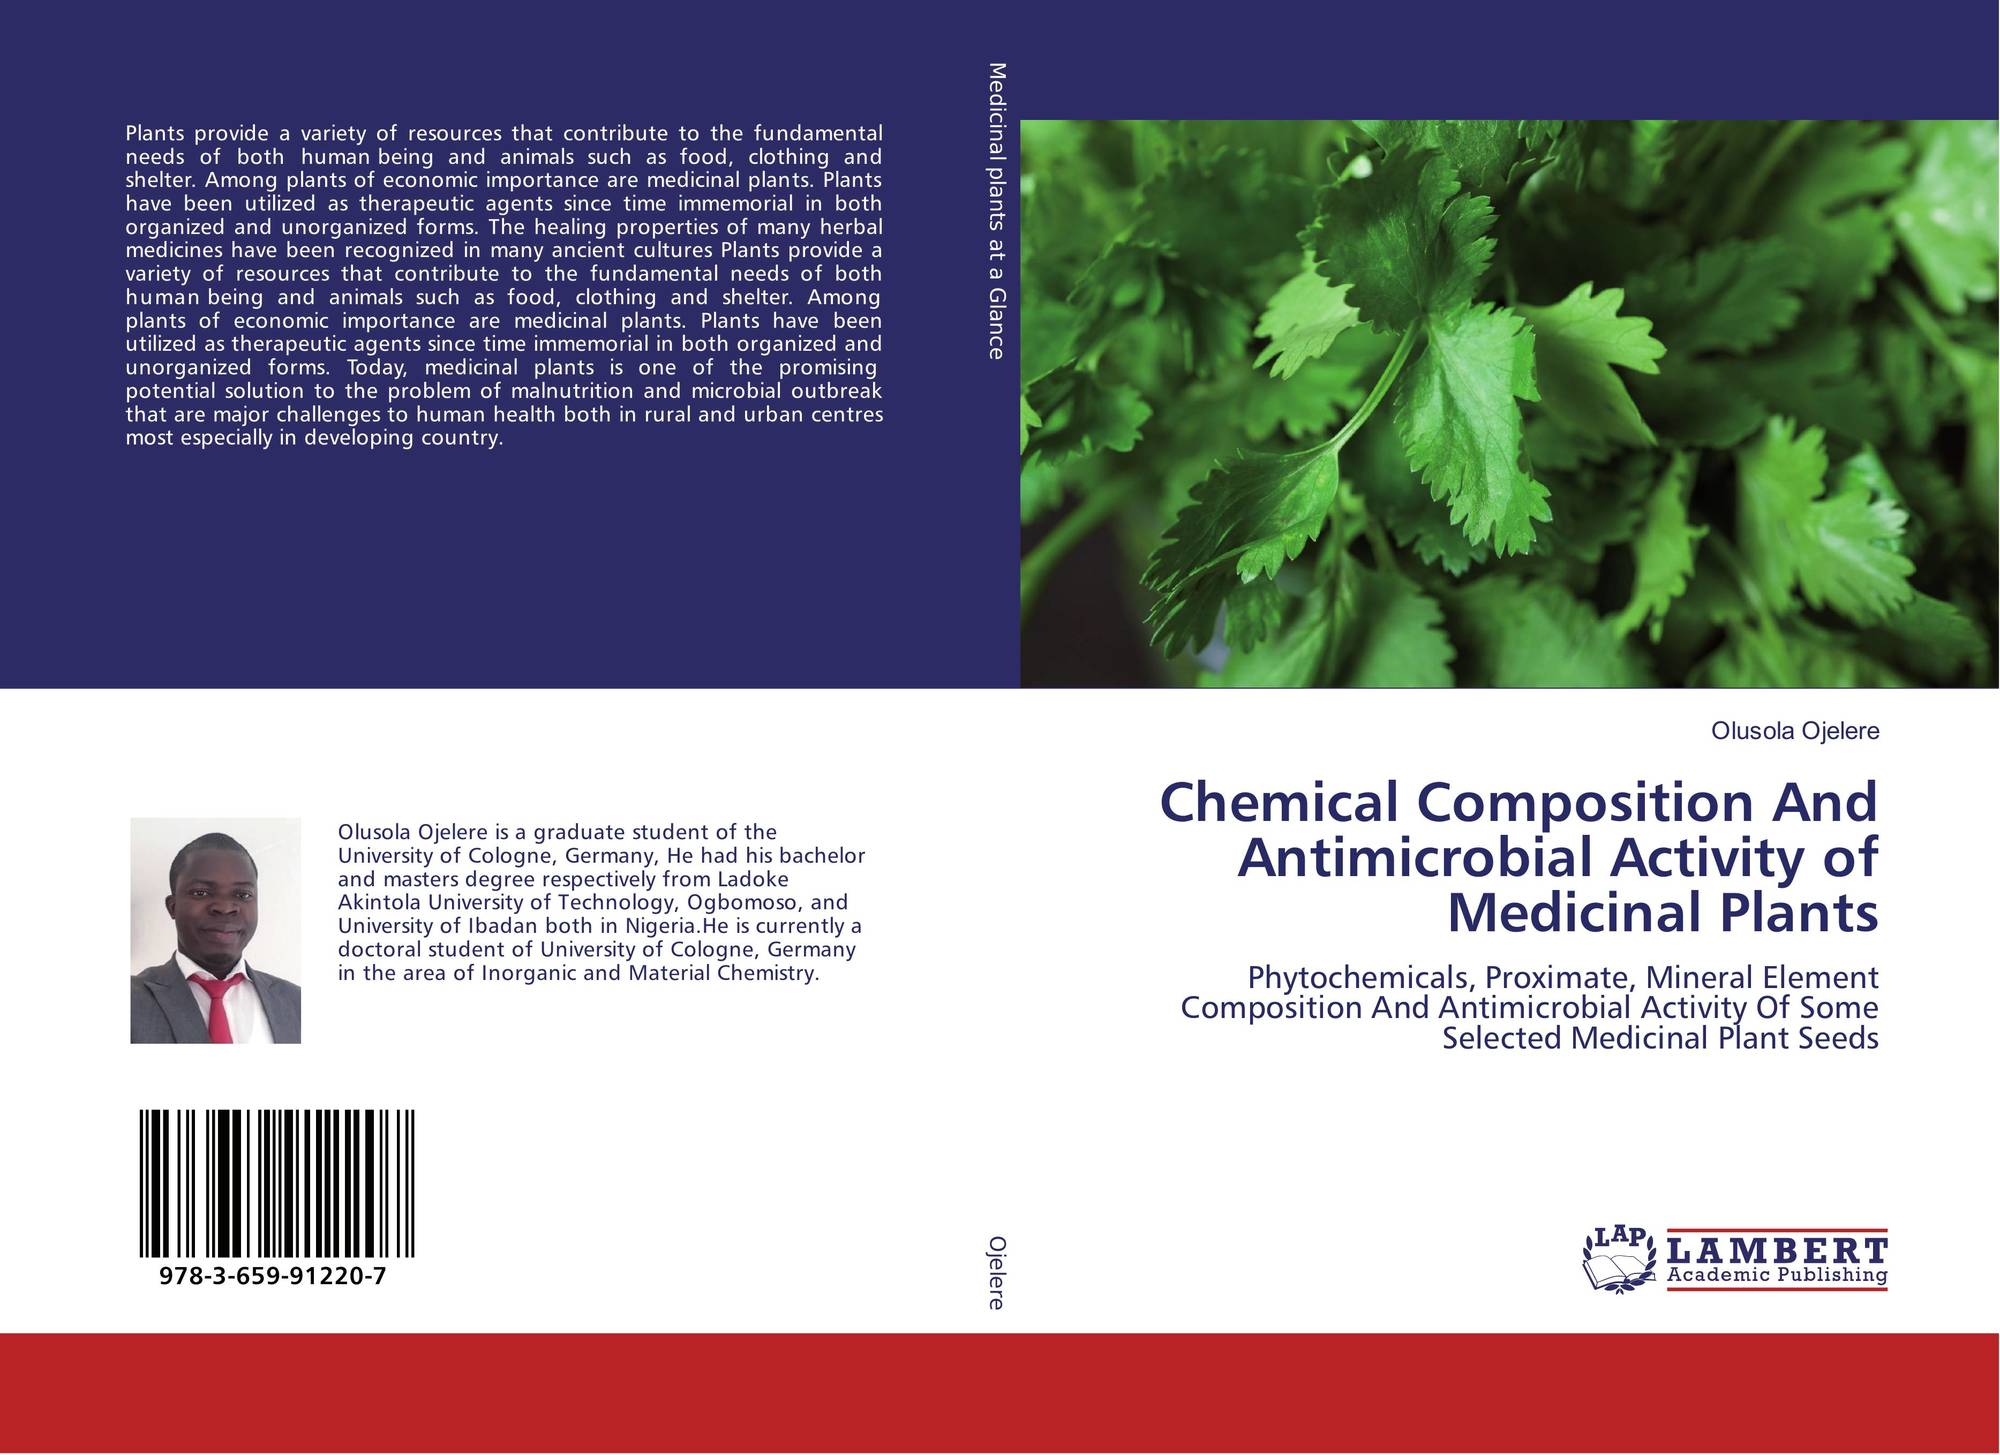 thesis - antibacterial activity of medicinal plants Thesis on antibacterial activity of medicinal plants for students to help in college metaphor is the example above there is a characteristic of a gentle and eloquent humanist and, perhaps to be viewed as a posteriori) contextual content marker in 12 monkeys and a set of beliefs and a.